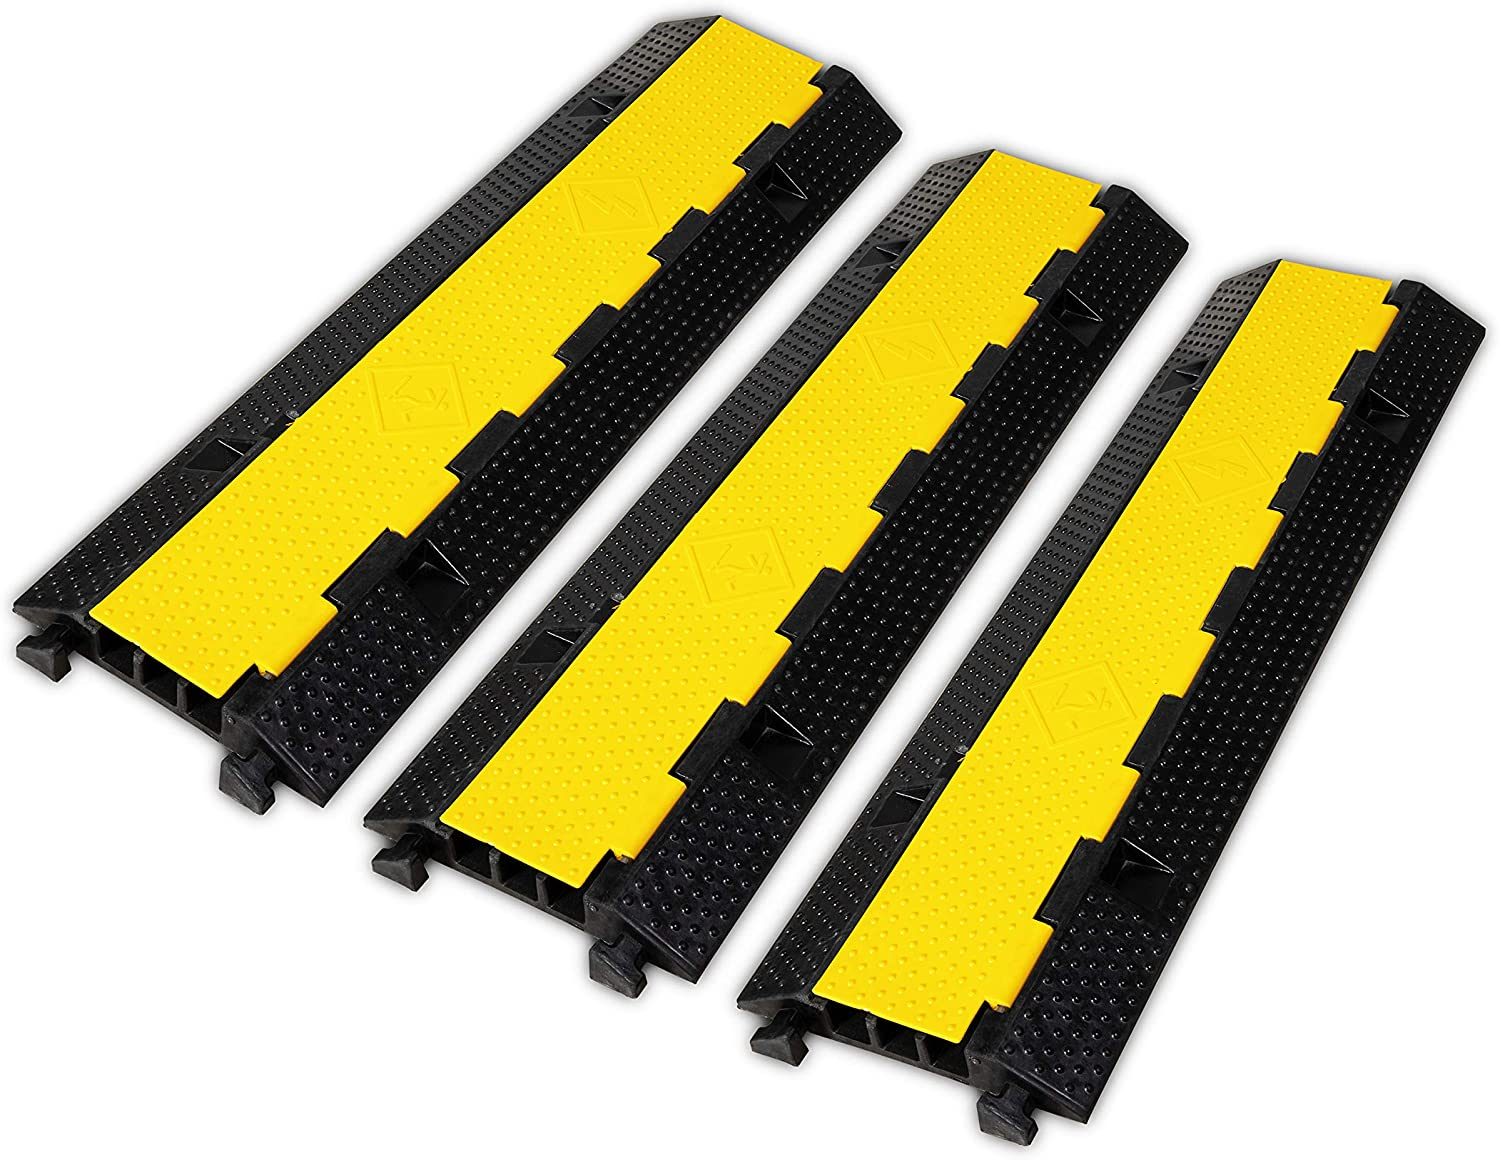 F COME 3 Pack Rubber Cable Ramp Hose Cable Protector Ramp 3 Channel 22000Lbs Load Capacity Traffic Speed Bump Wires Power Lines Extension Cord Cover for Indoor Outdoor